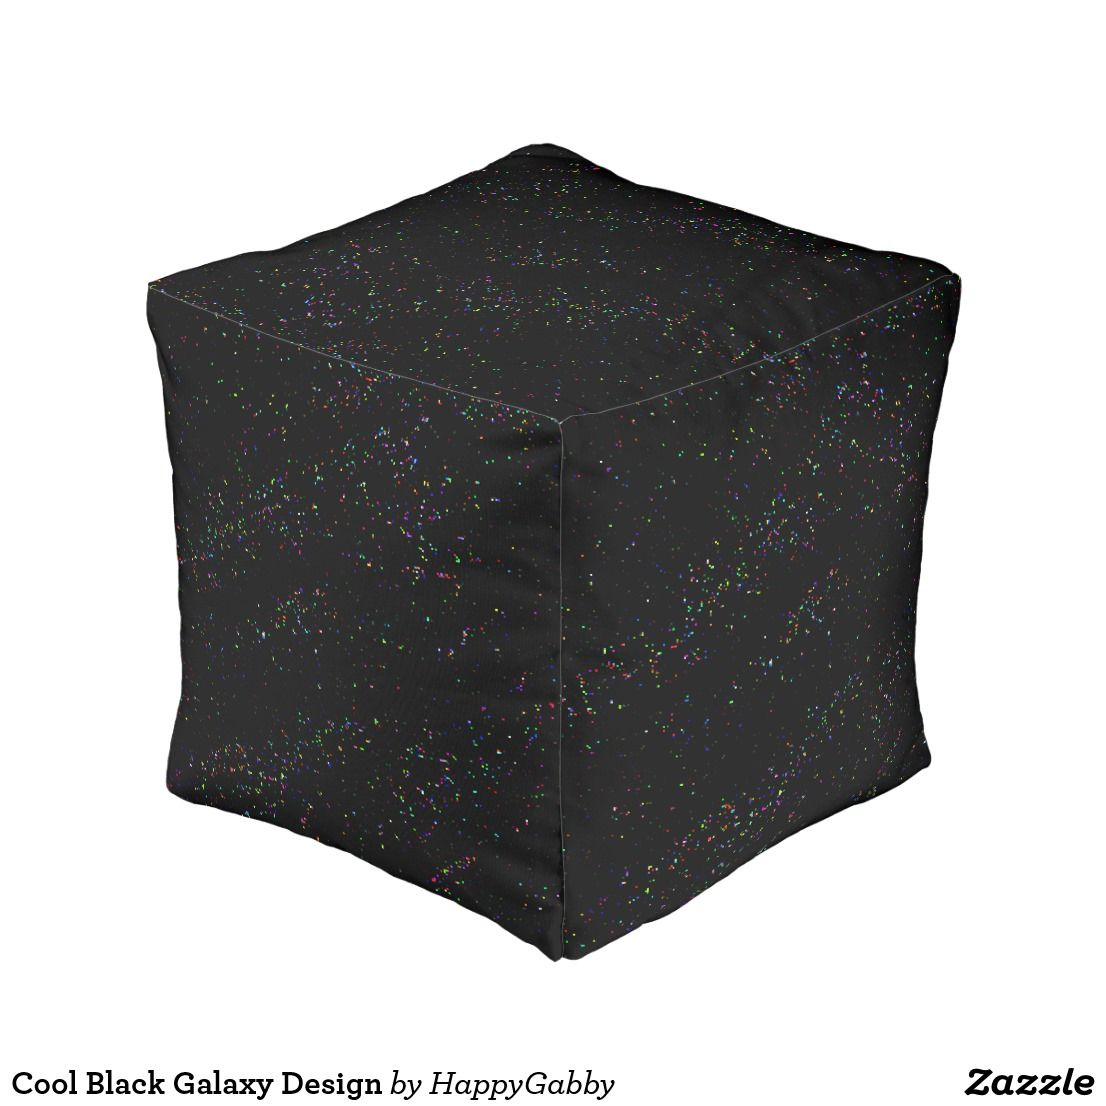 Moda Design Pouf.Cool Black Galaxy Design Pouf Zazzle Com Creative Zazzle